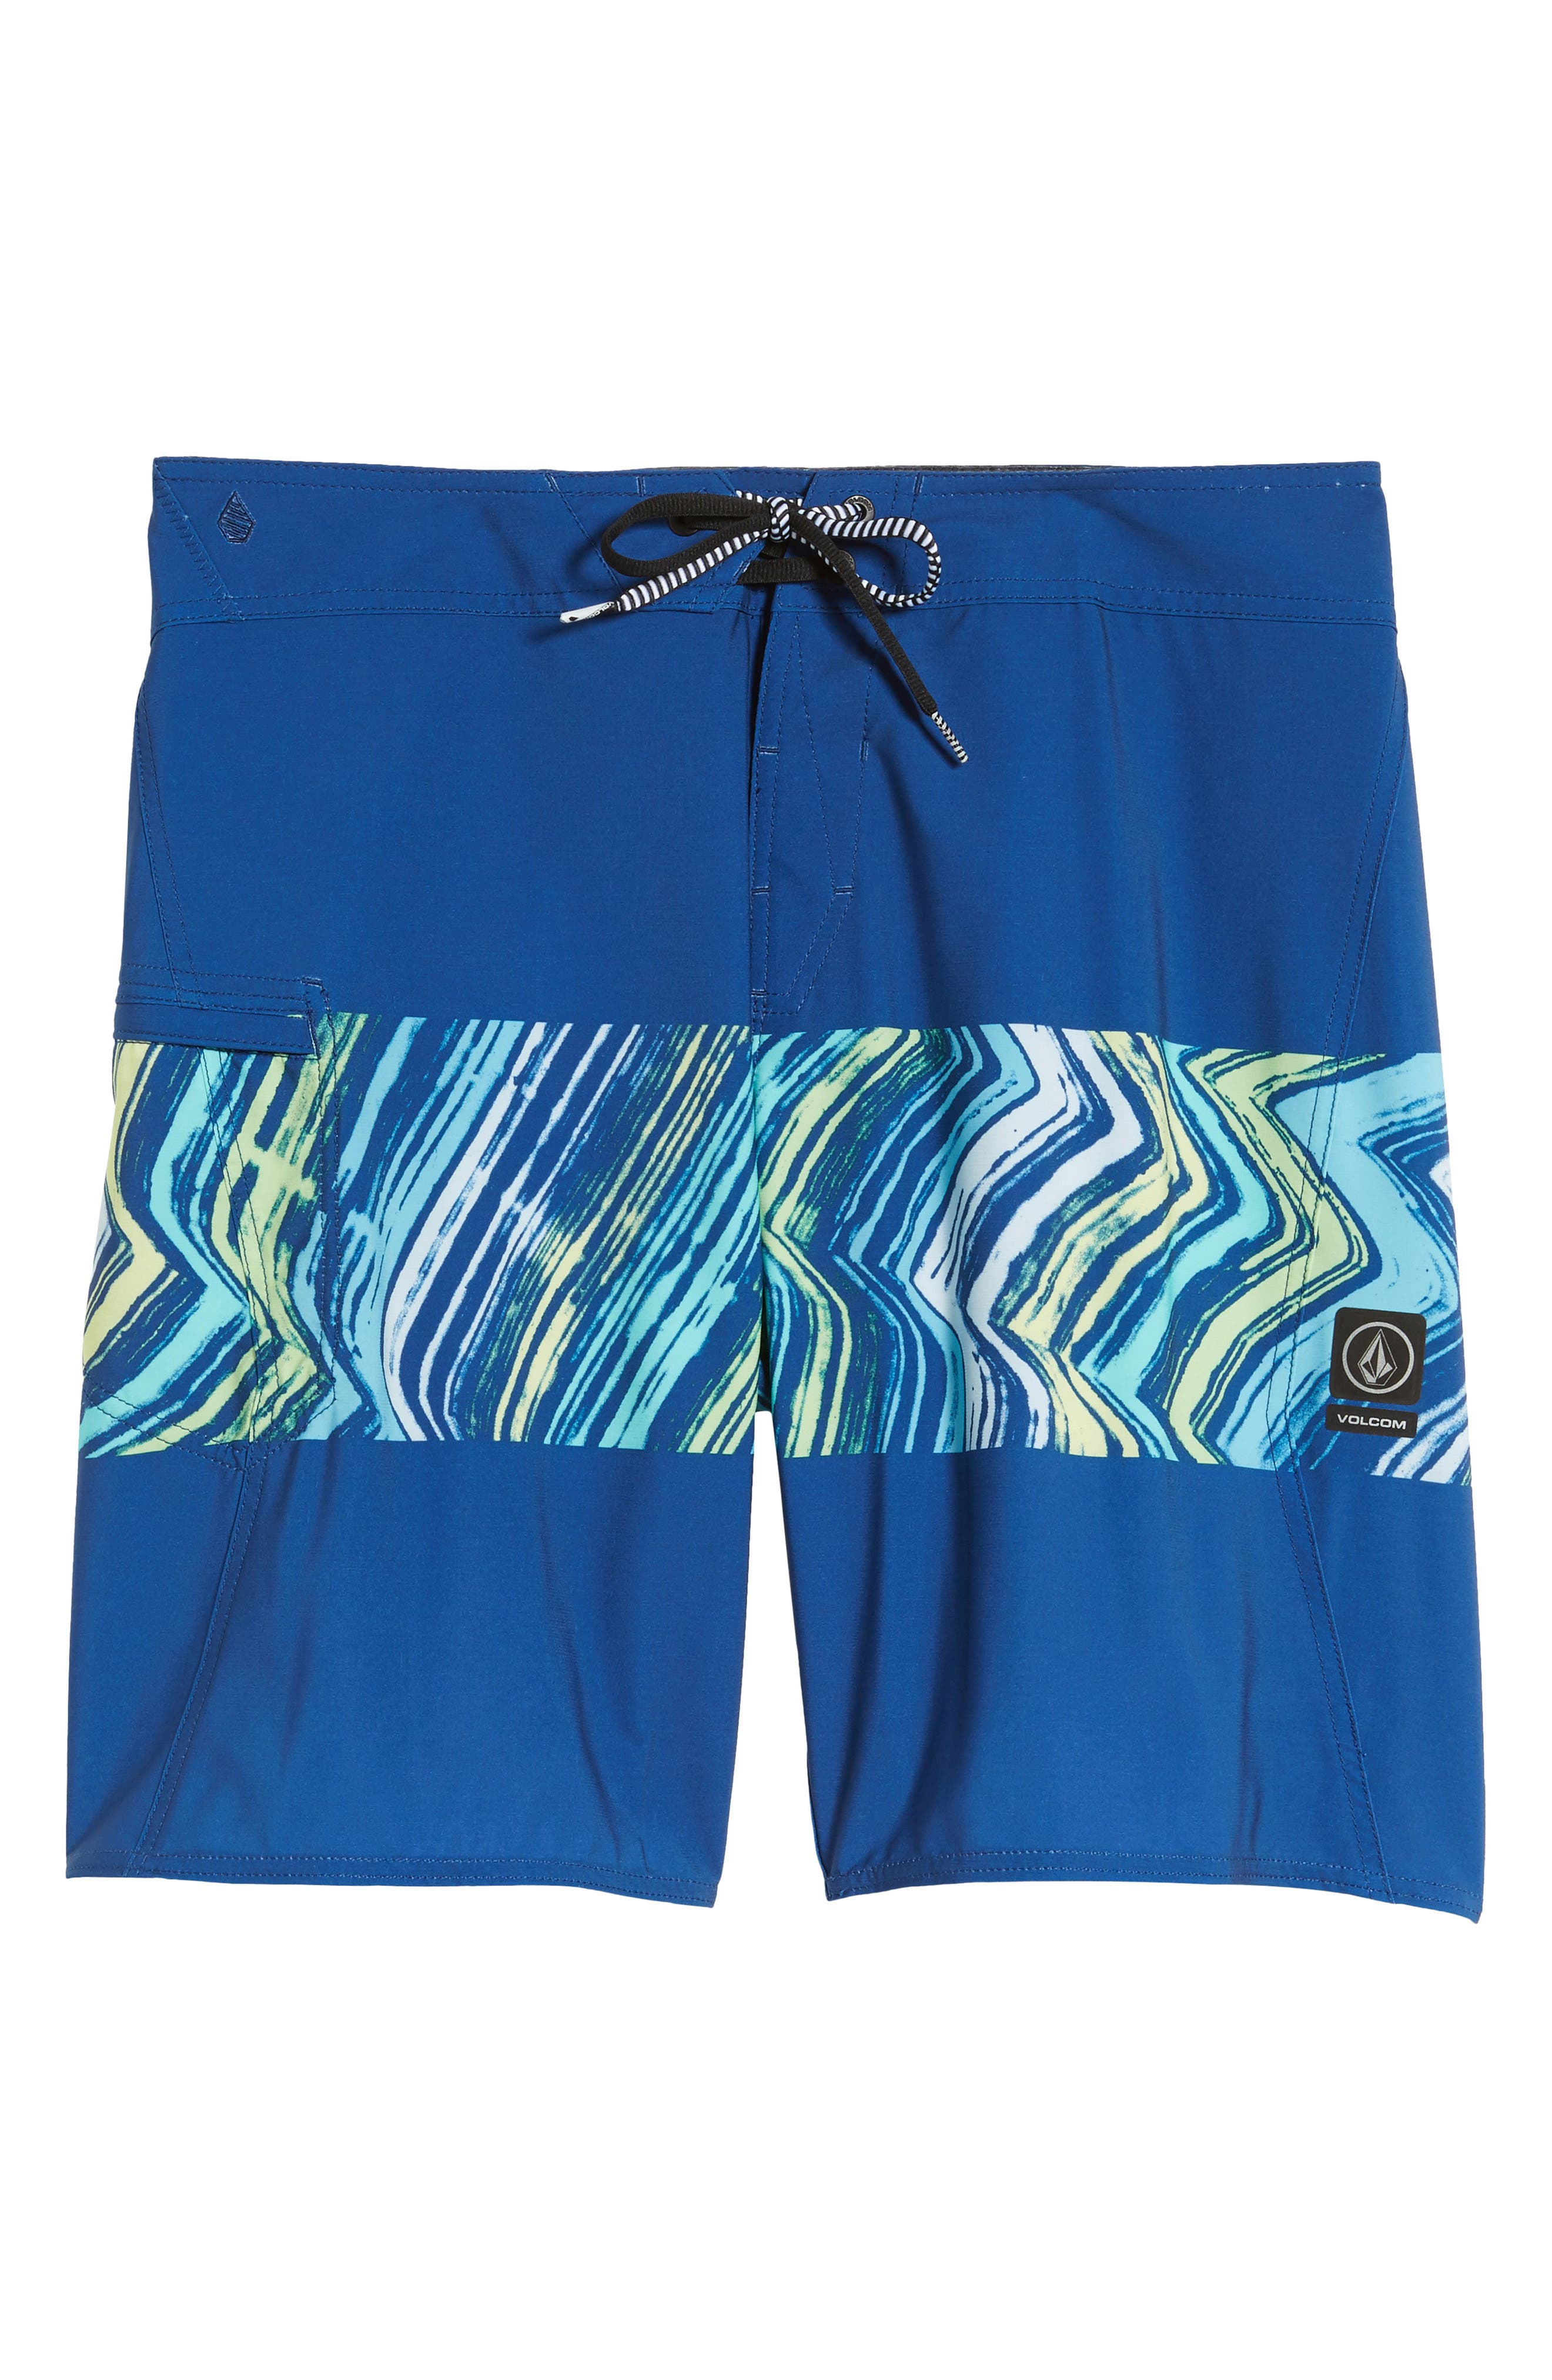 Macaw Board Shorts,                         Main,                         color, CAMPER BLUE